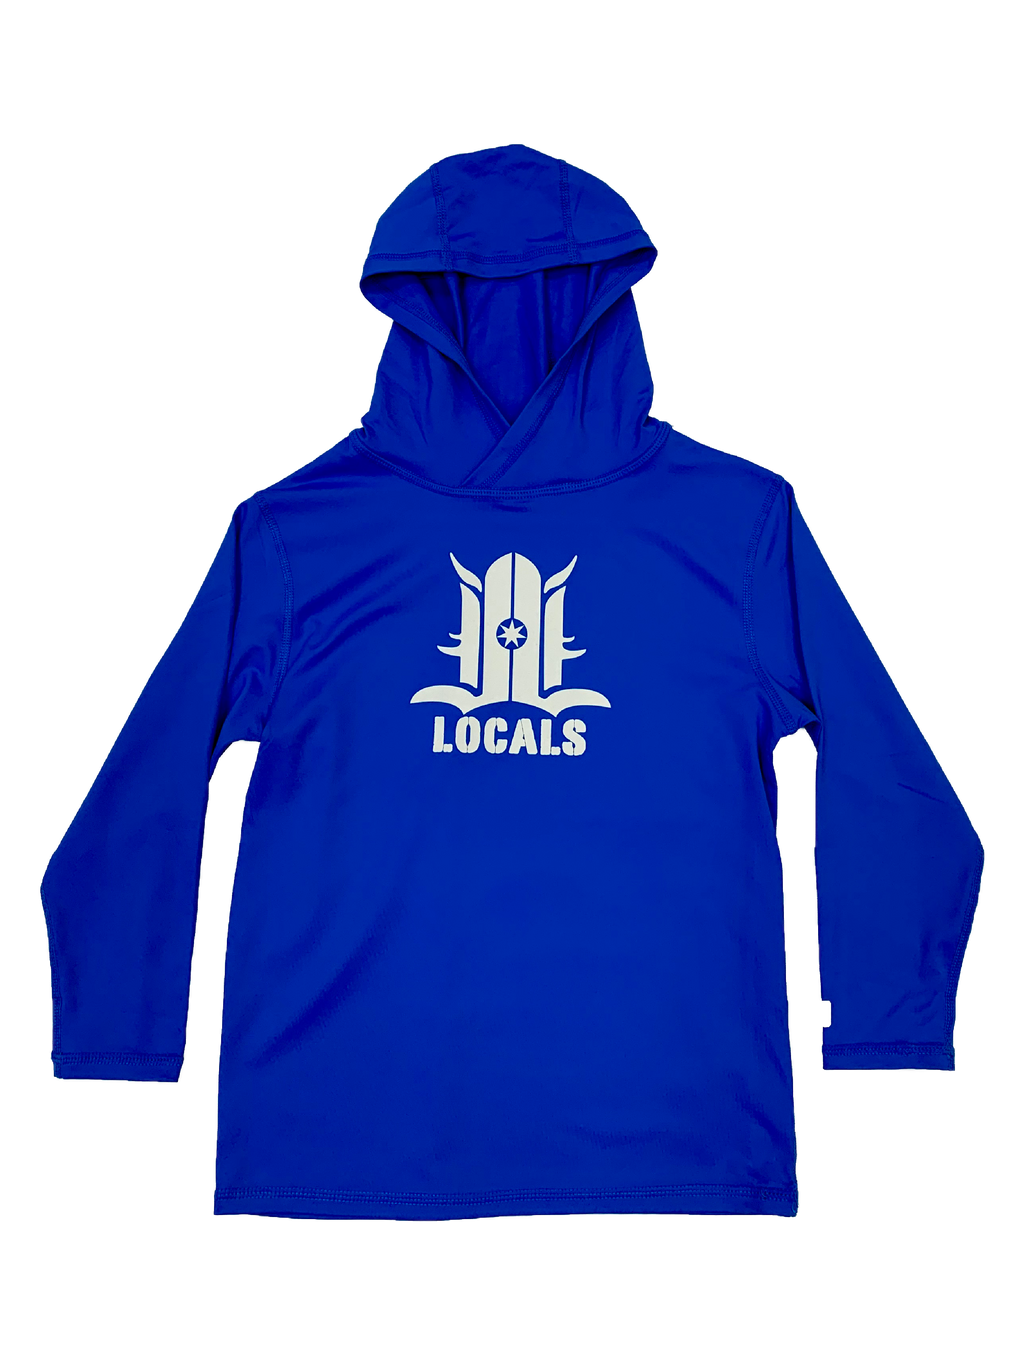 LOCALS TODDLER MY HOODIE  RASH GUARD UPF 50 ROYAL